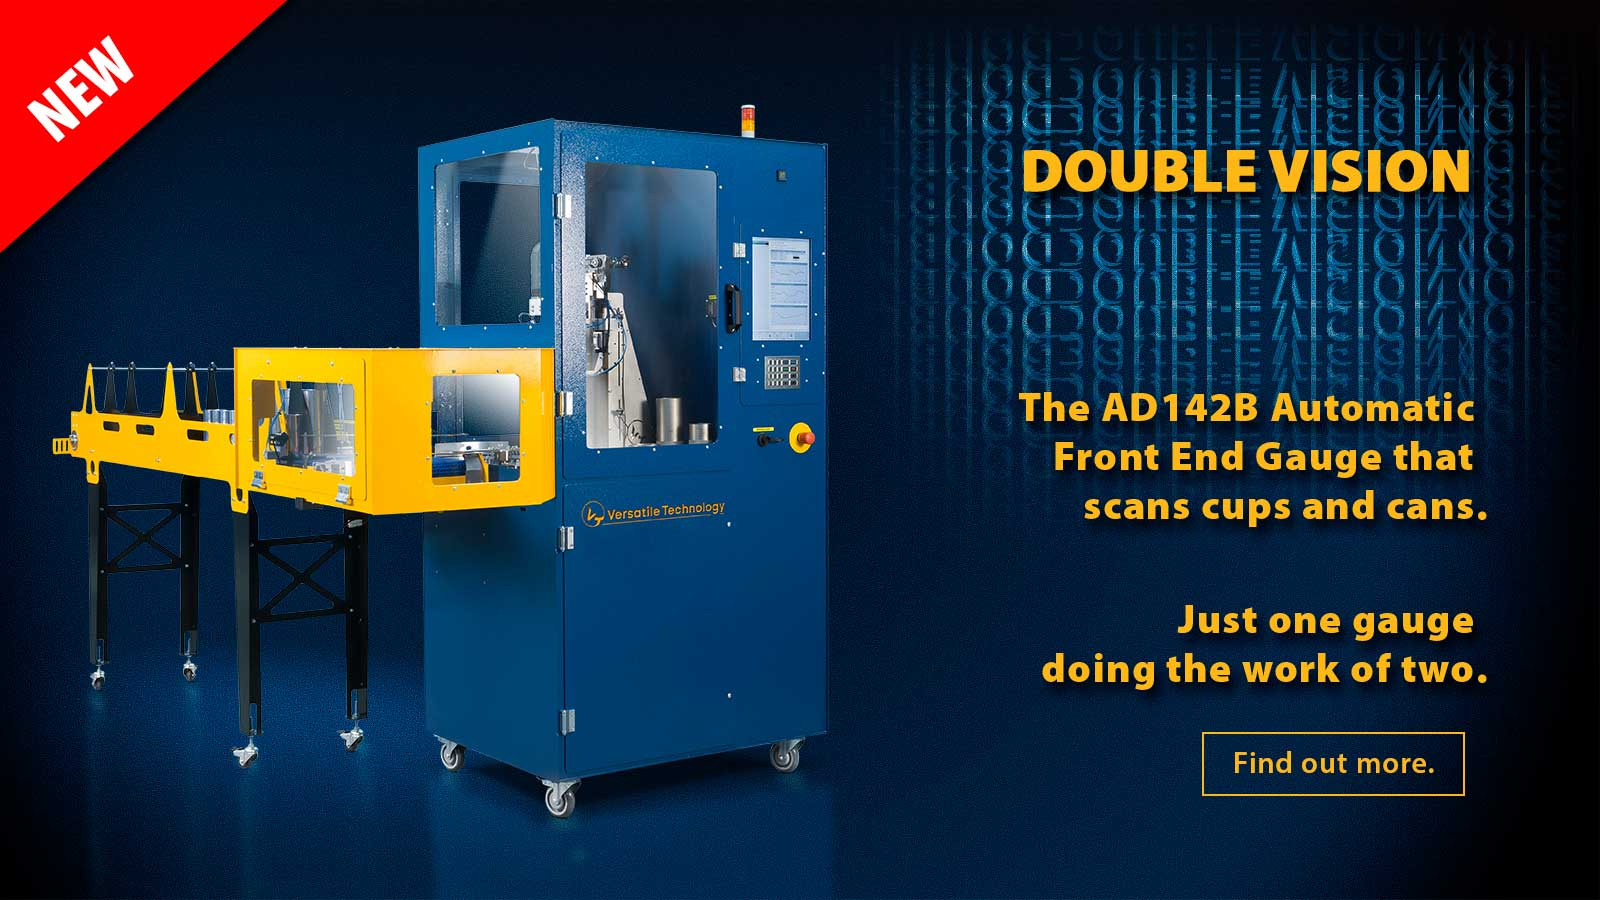 Double Vision. The AD142B Automatic Front End Gauge is one gauge that does the work of two for both cups and cans.